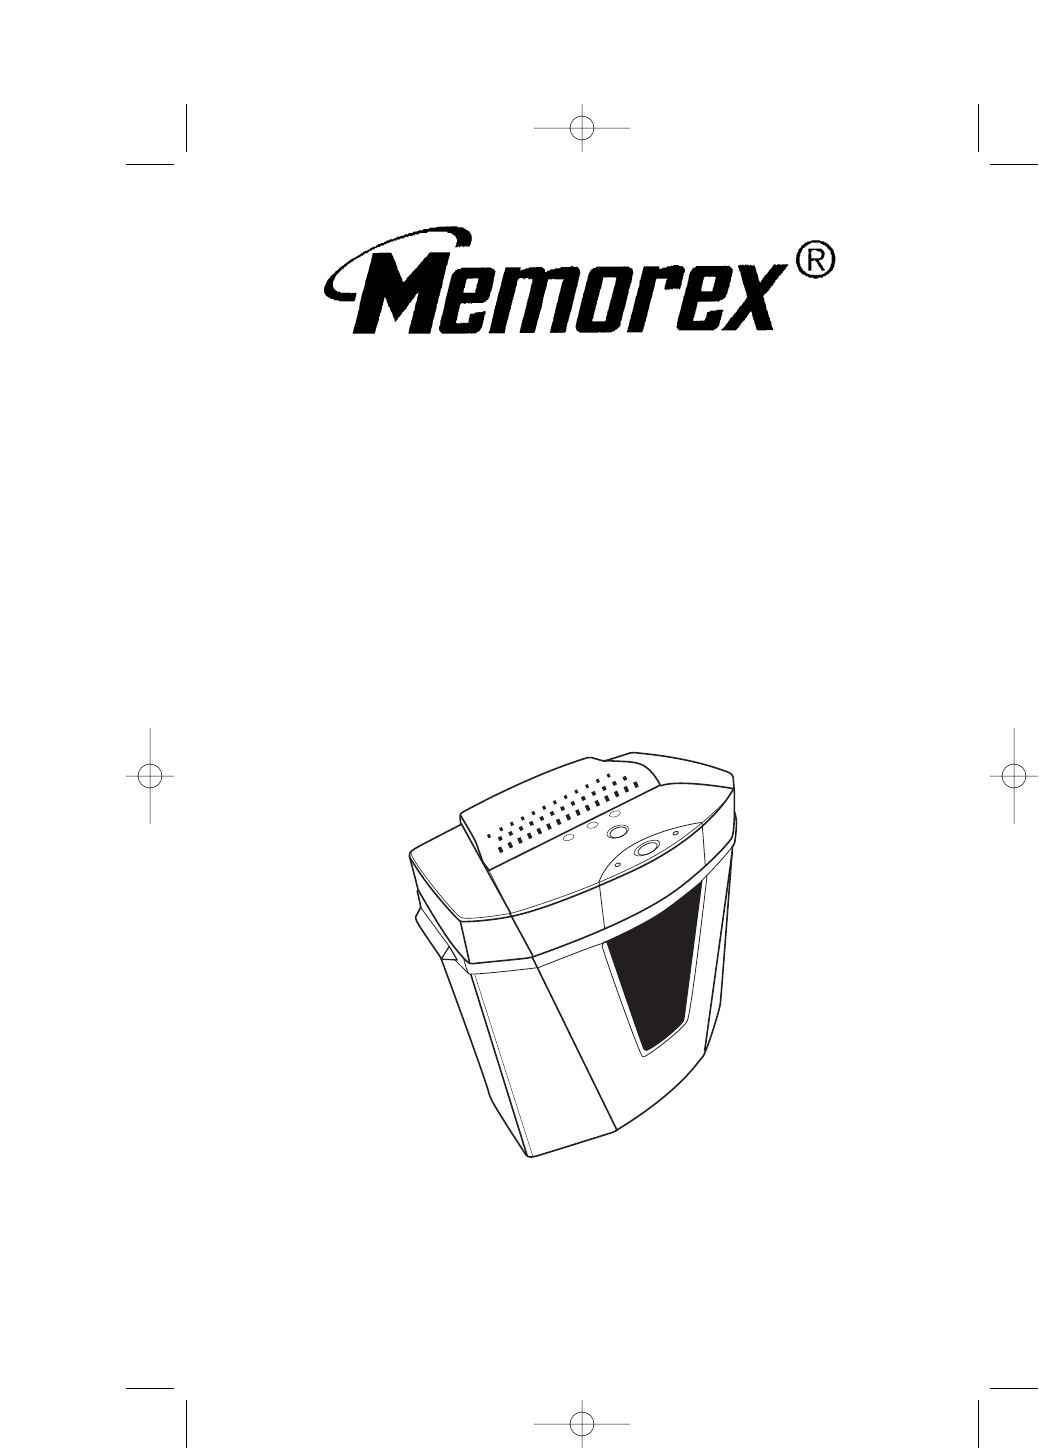 Memorex Paper Shredder Mps User Guide